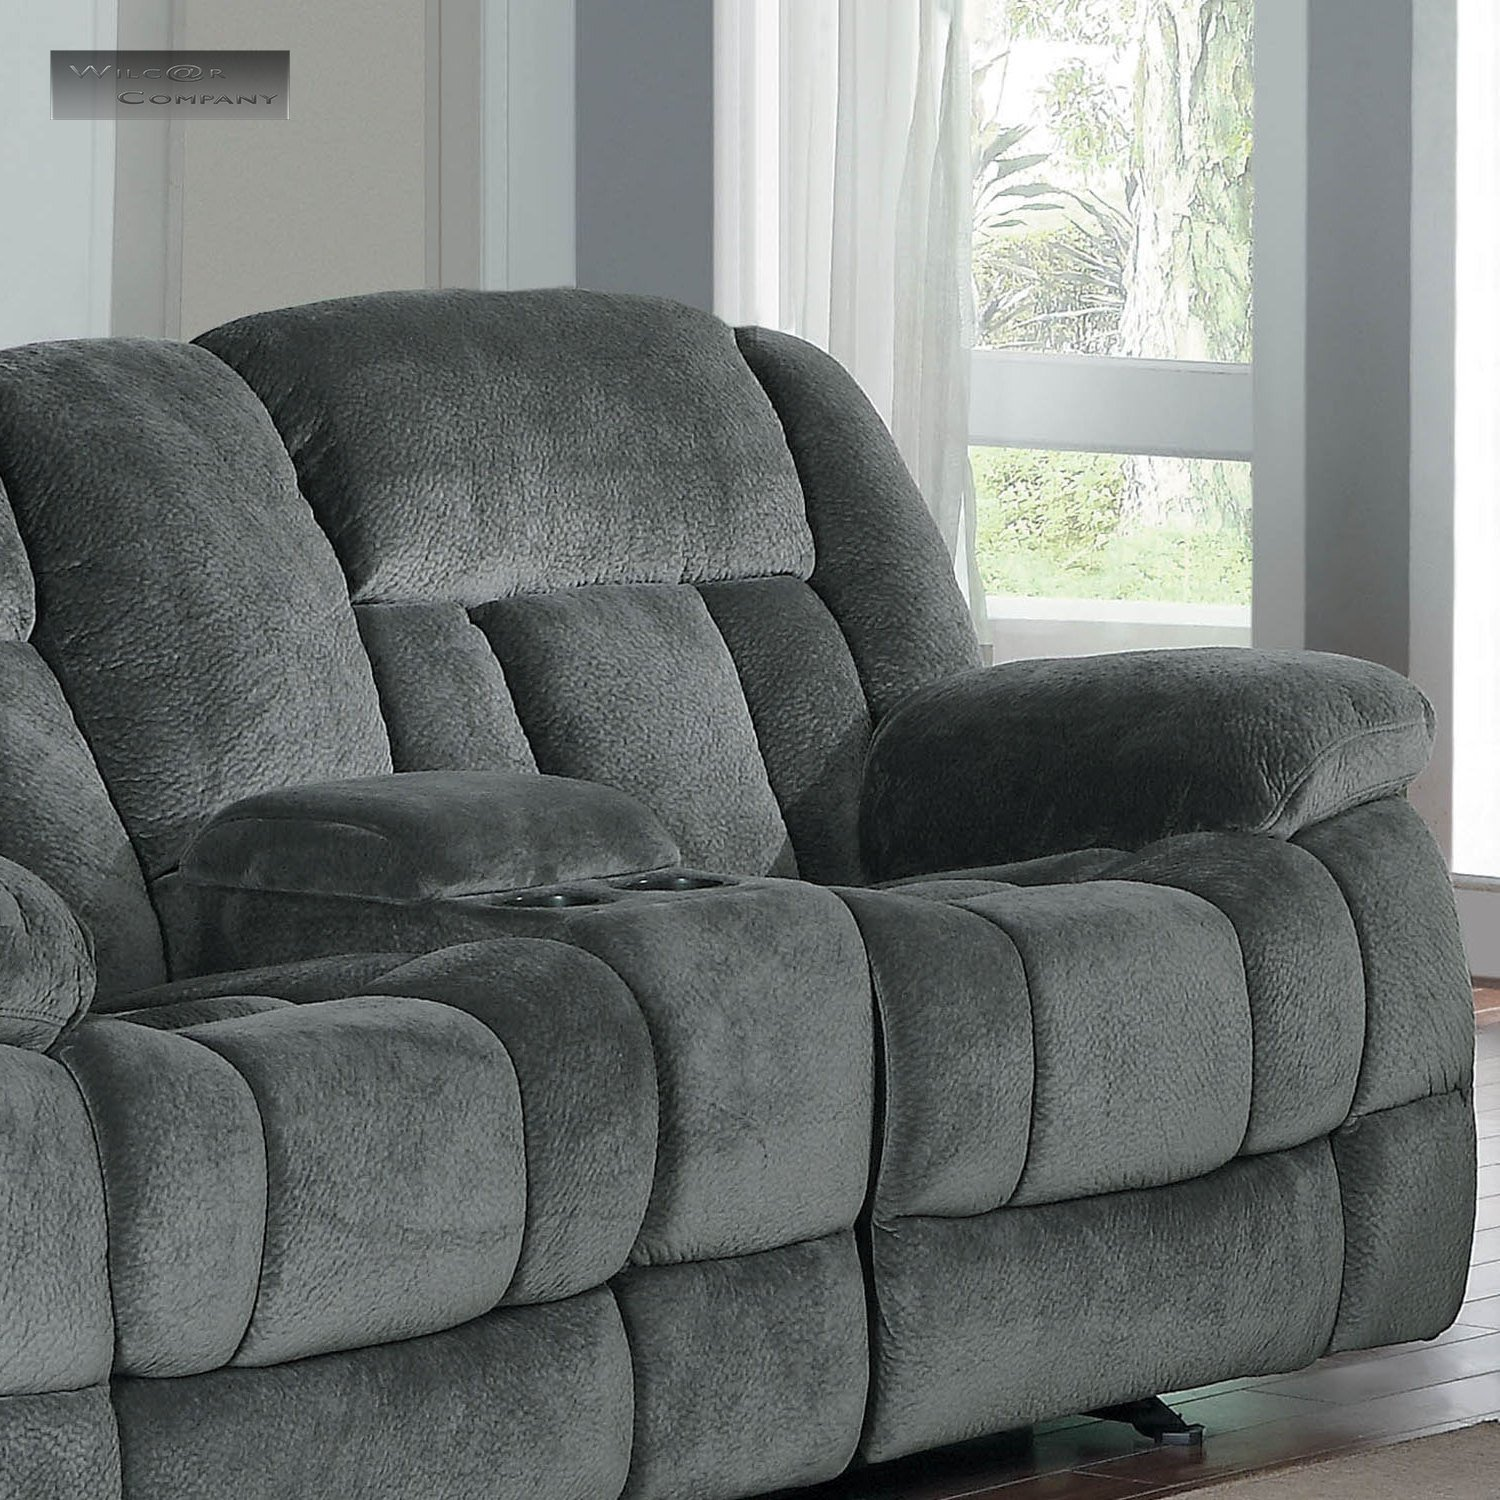 New Grey Rocker Glider Double Recliner Loveseat Lazy Sofa